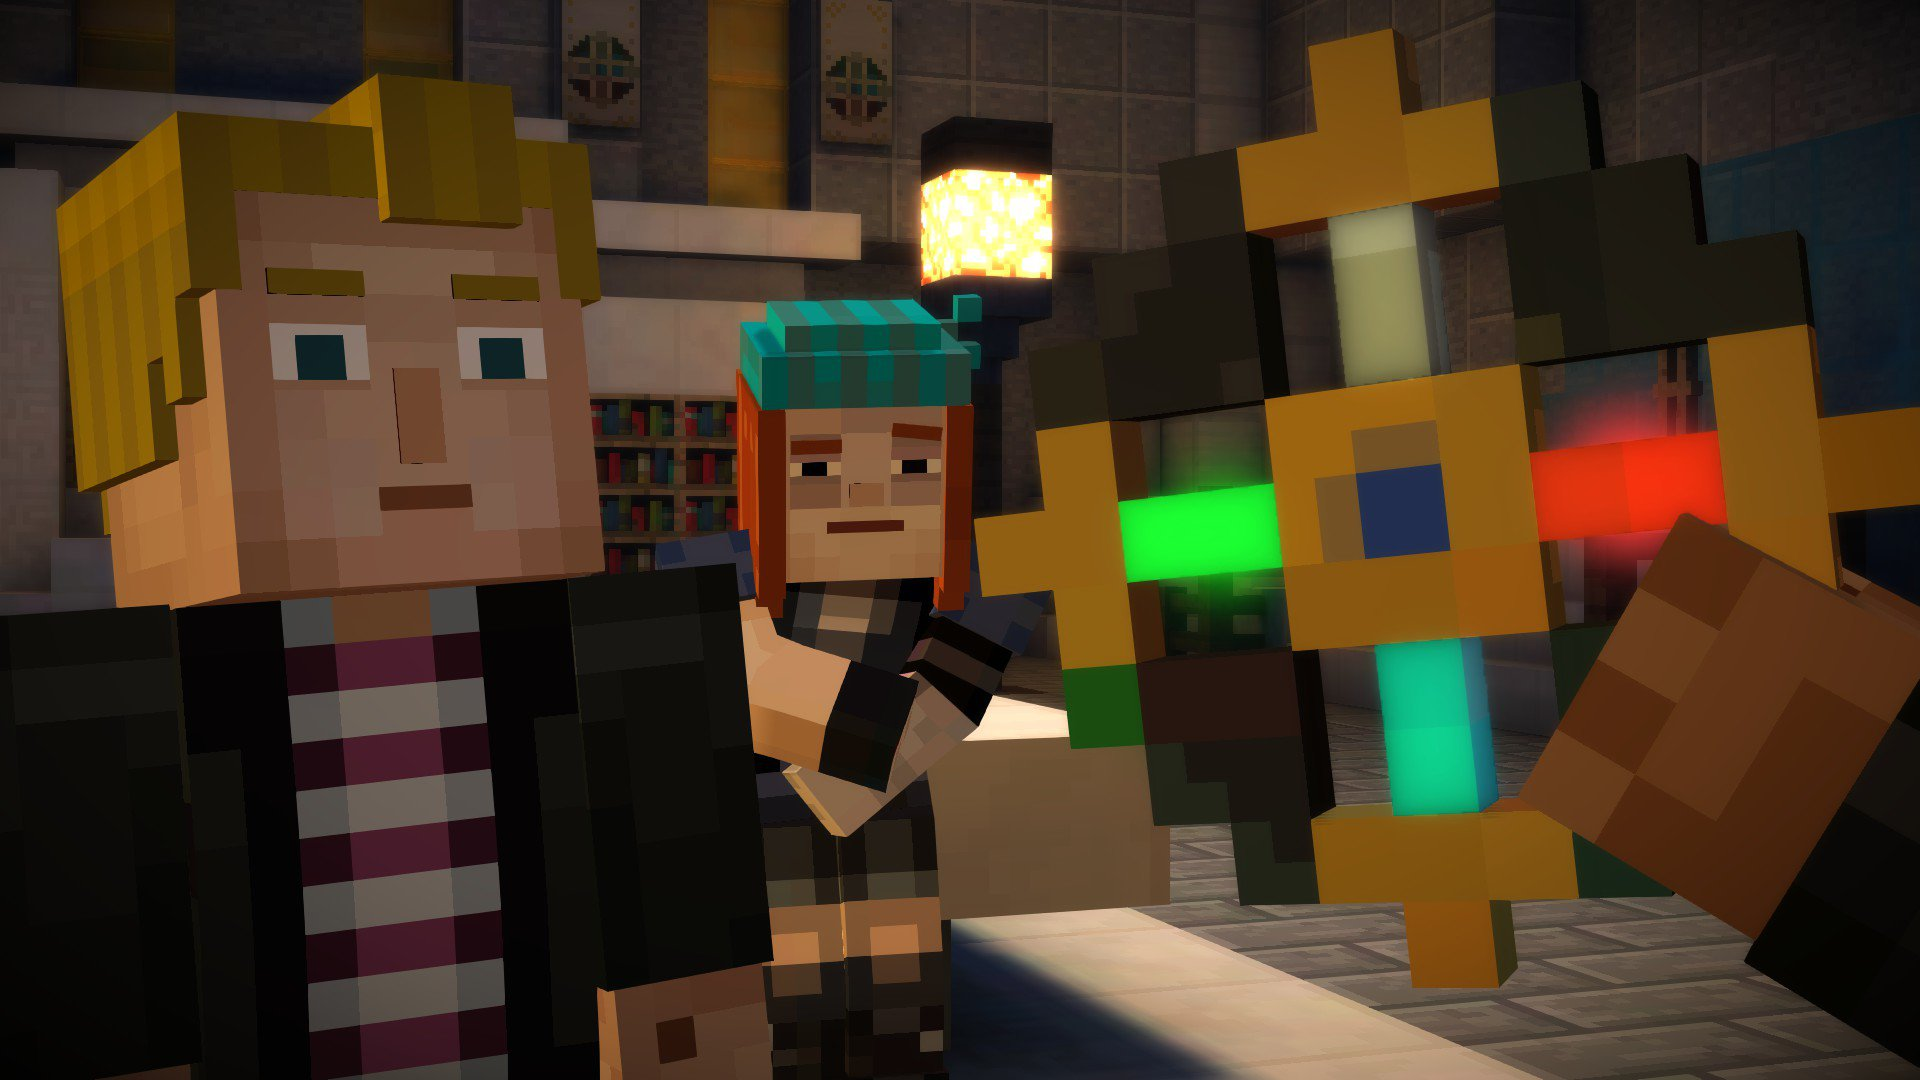 Minecraft: Story Mode - Episode Three: The Last Place You Look